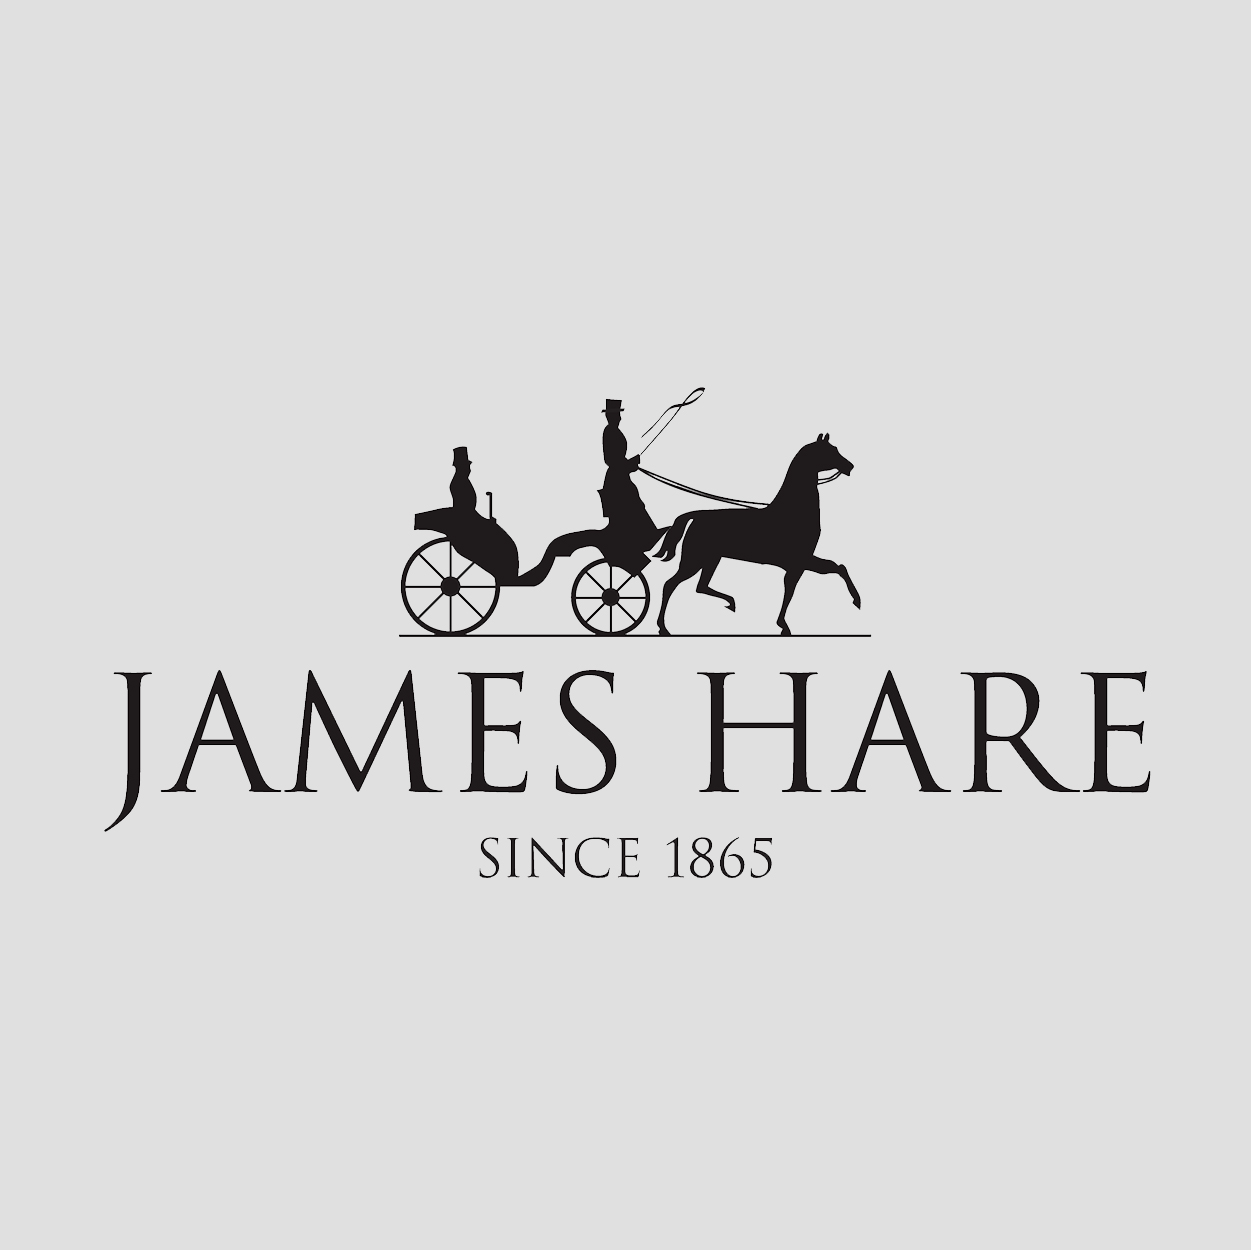 James Hare logo